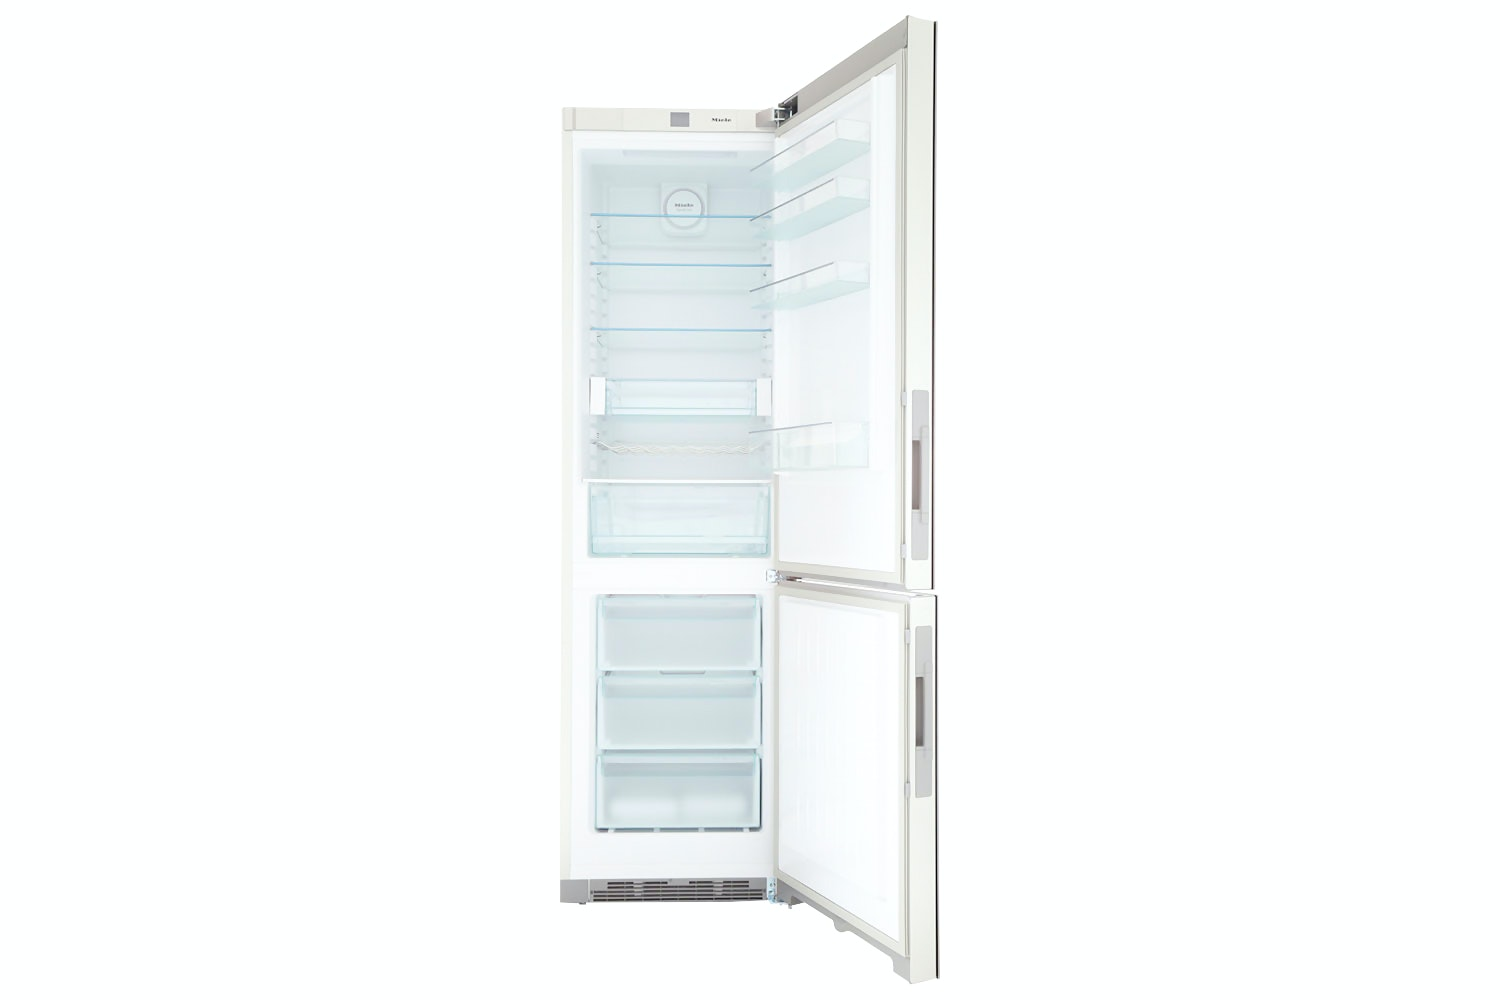 Miele KFN 29233 D bb  XL freestanding fridge freezer   in exclusive Blackboard edition with DailyFresh and Frost free